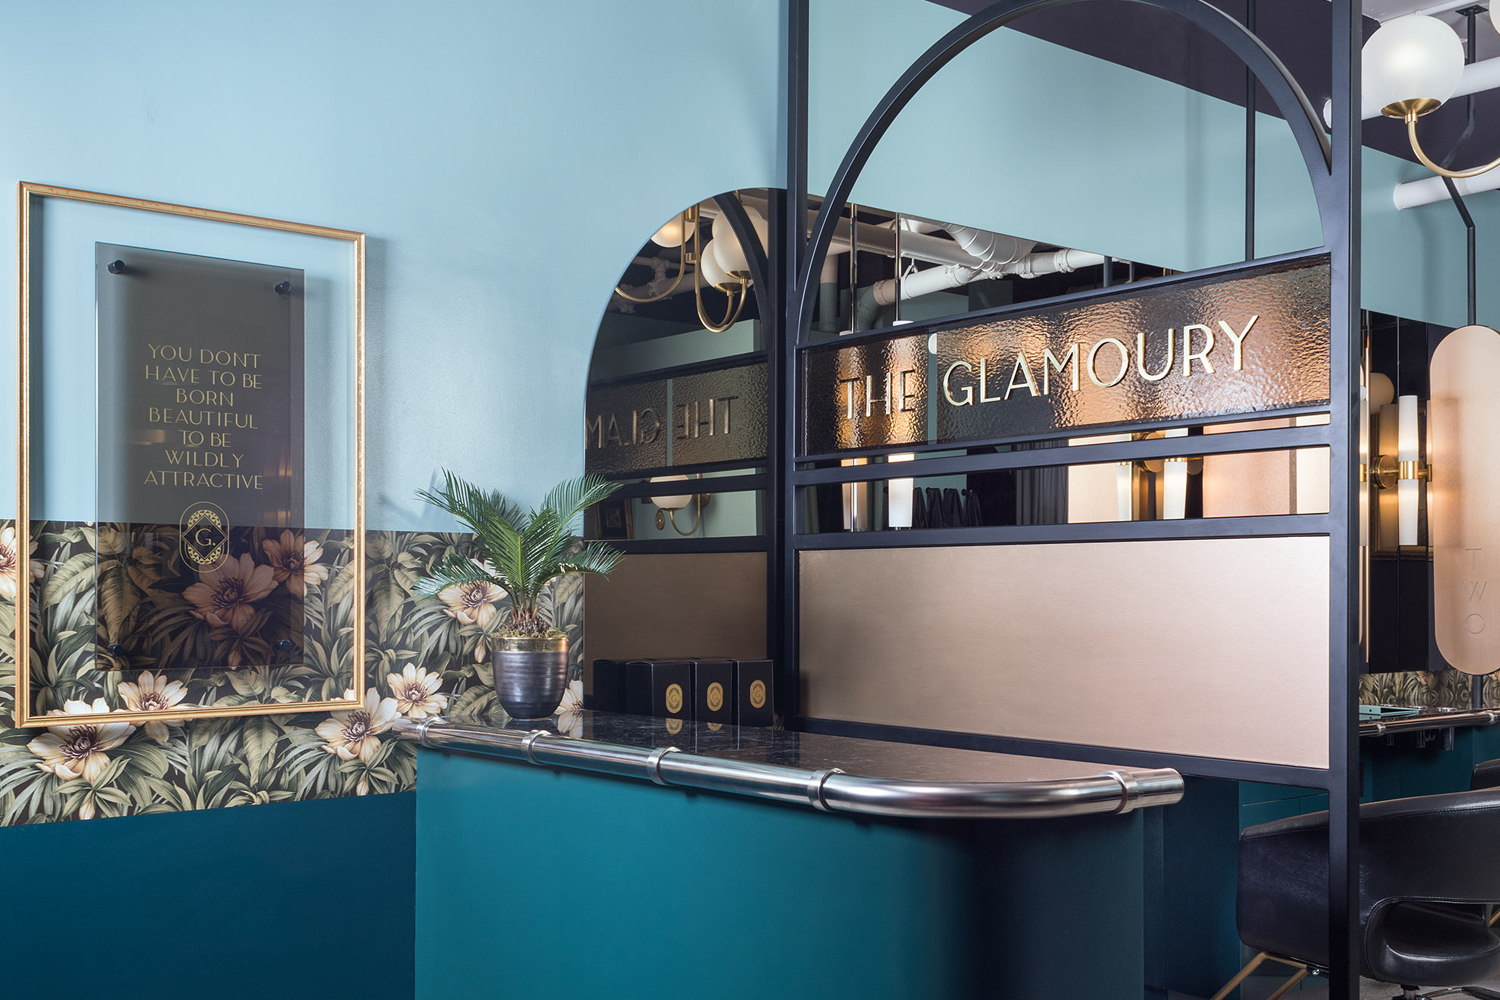 Brand identity and signage by Canadian design studio Glasfurd & Walker for Vancouver-based luxury make-up and styling salon The Glamoury.